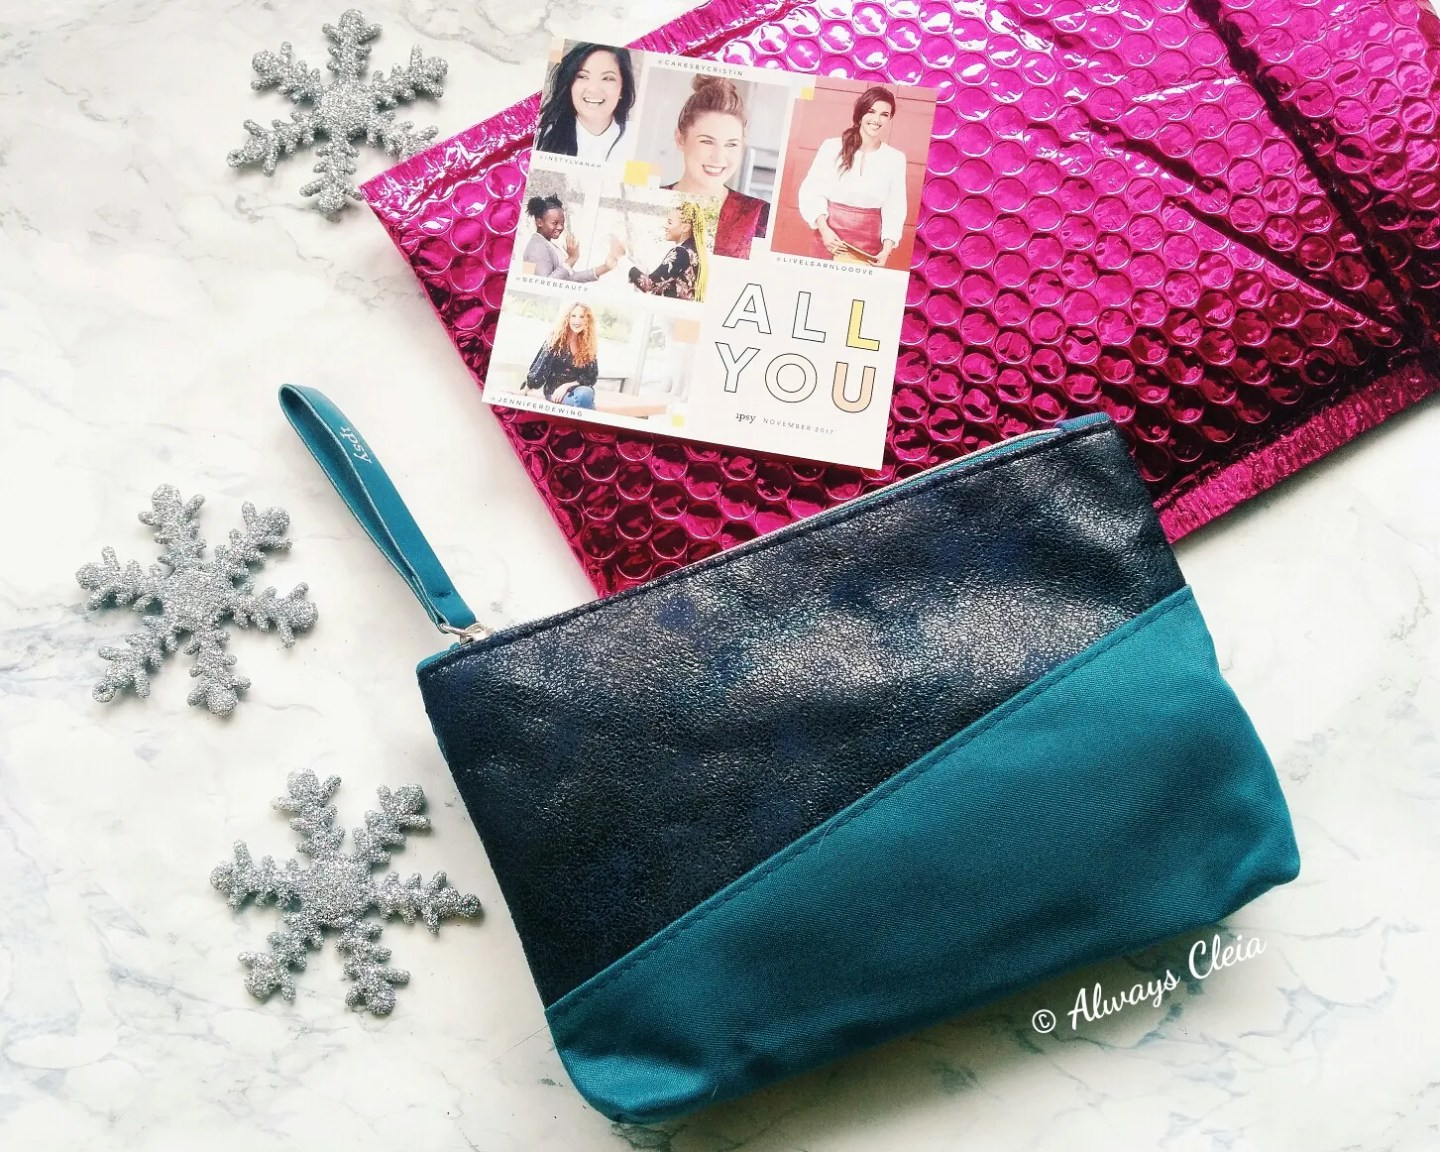 November Ipsy 2017 Glam Bag Design